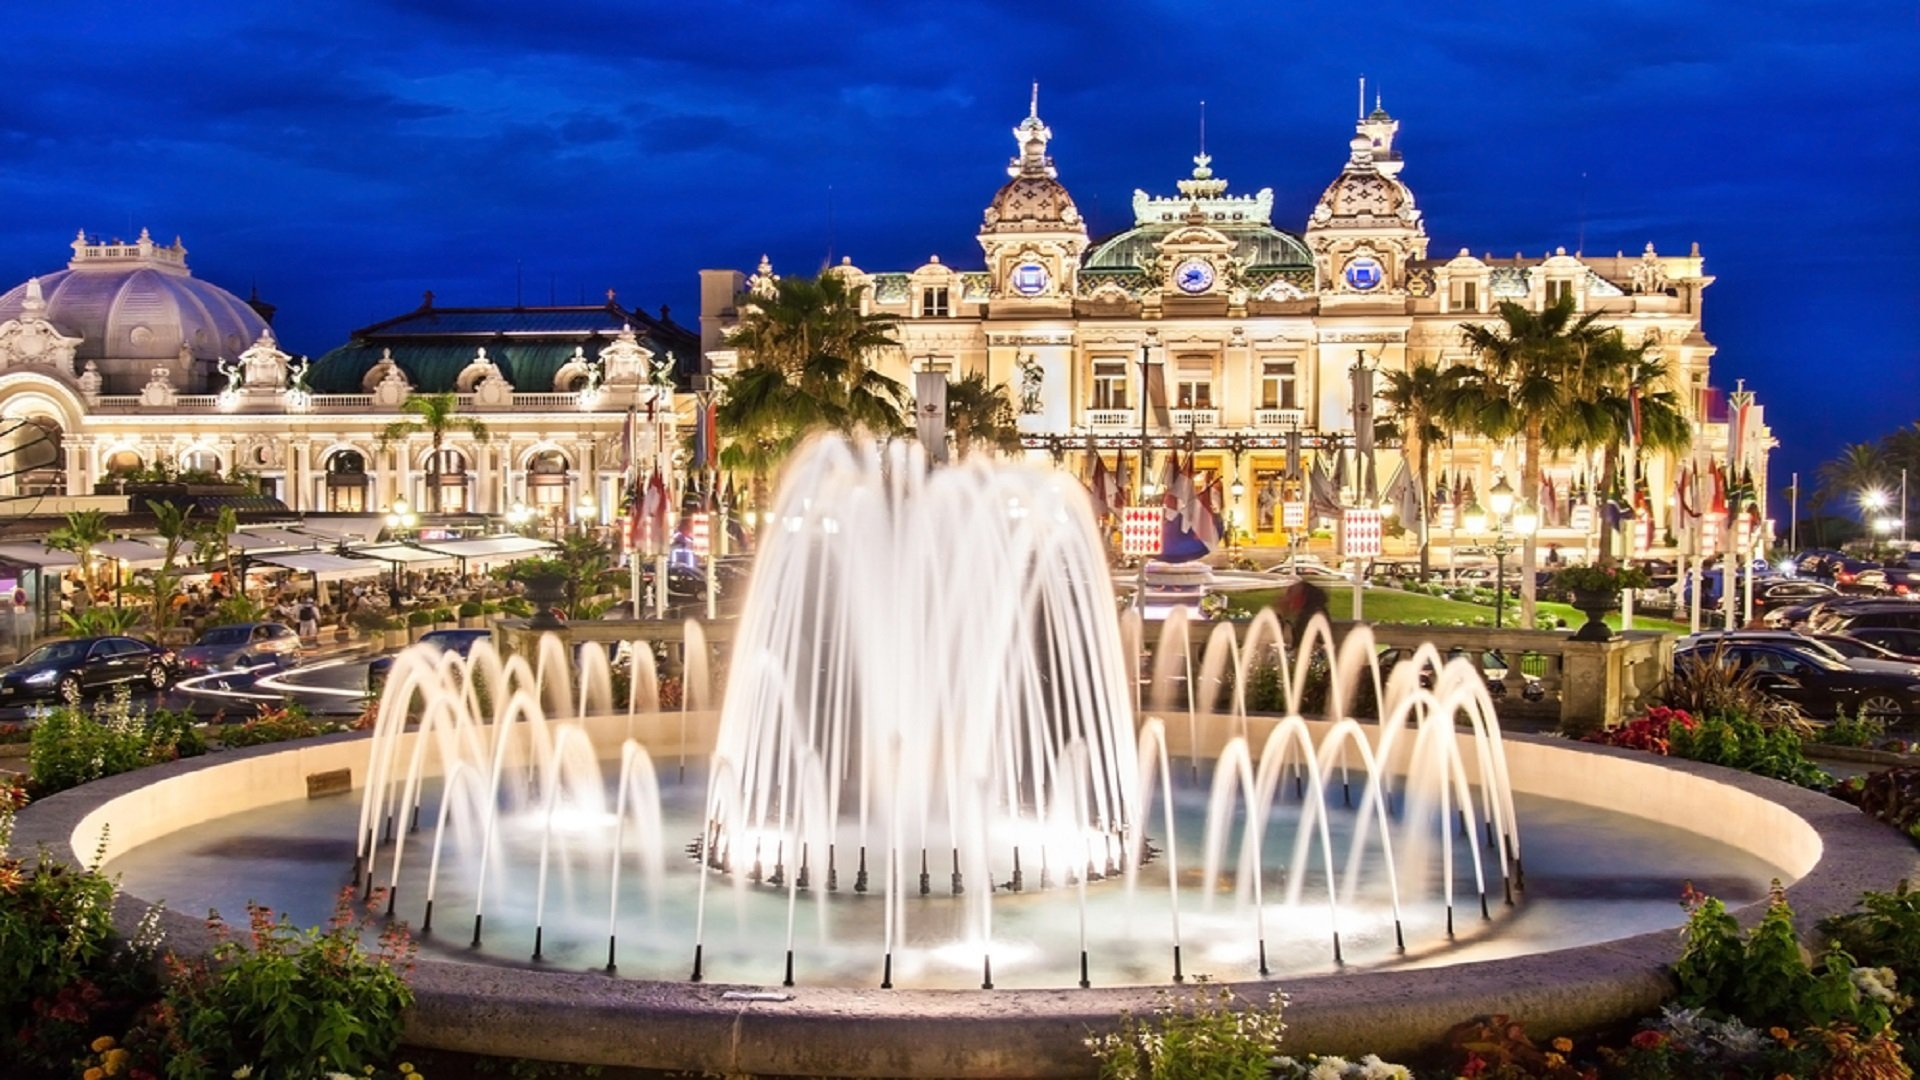 Best Places To Visit In Monaco Monaco Vacation Travel Guide Zen Tripstar Couple Travel Solo Travel